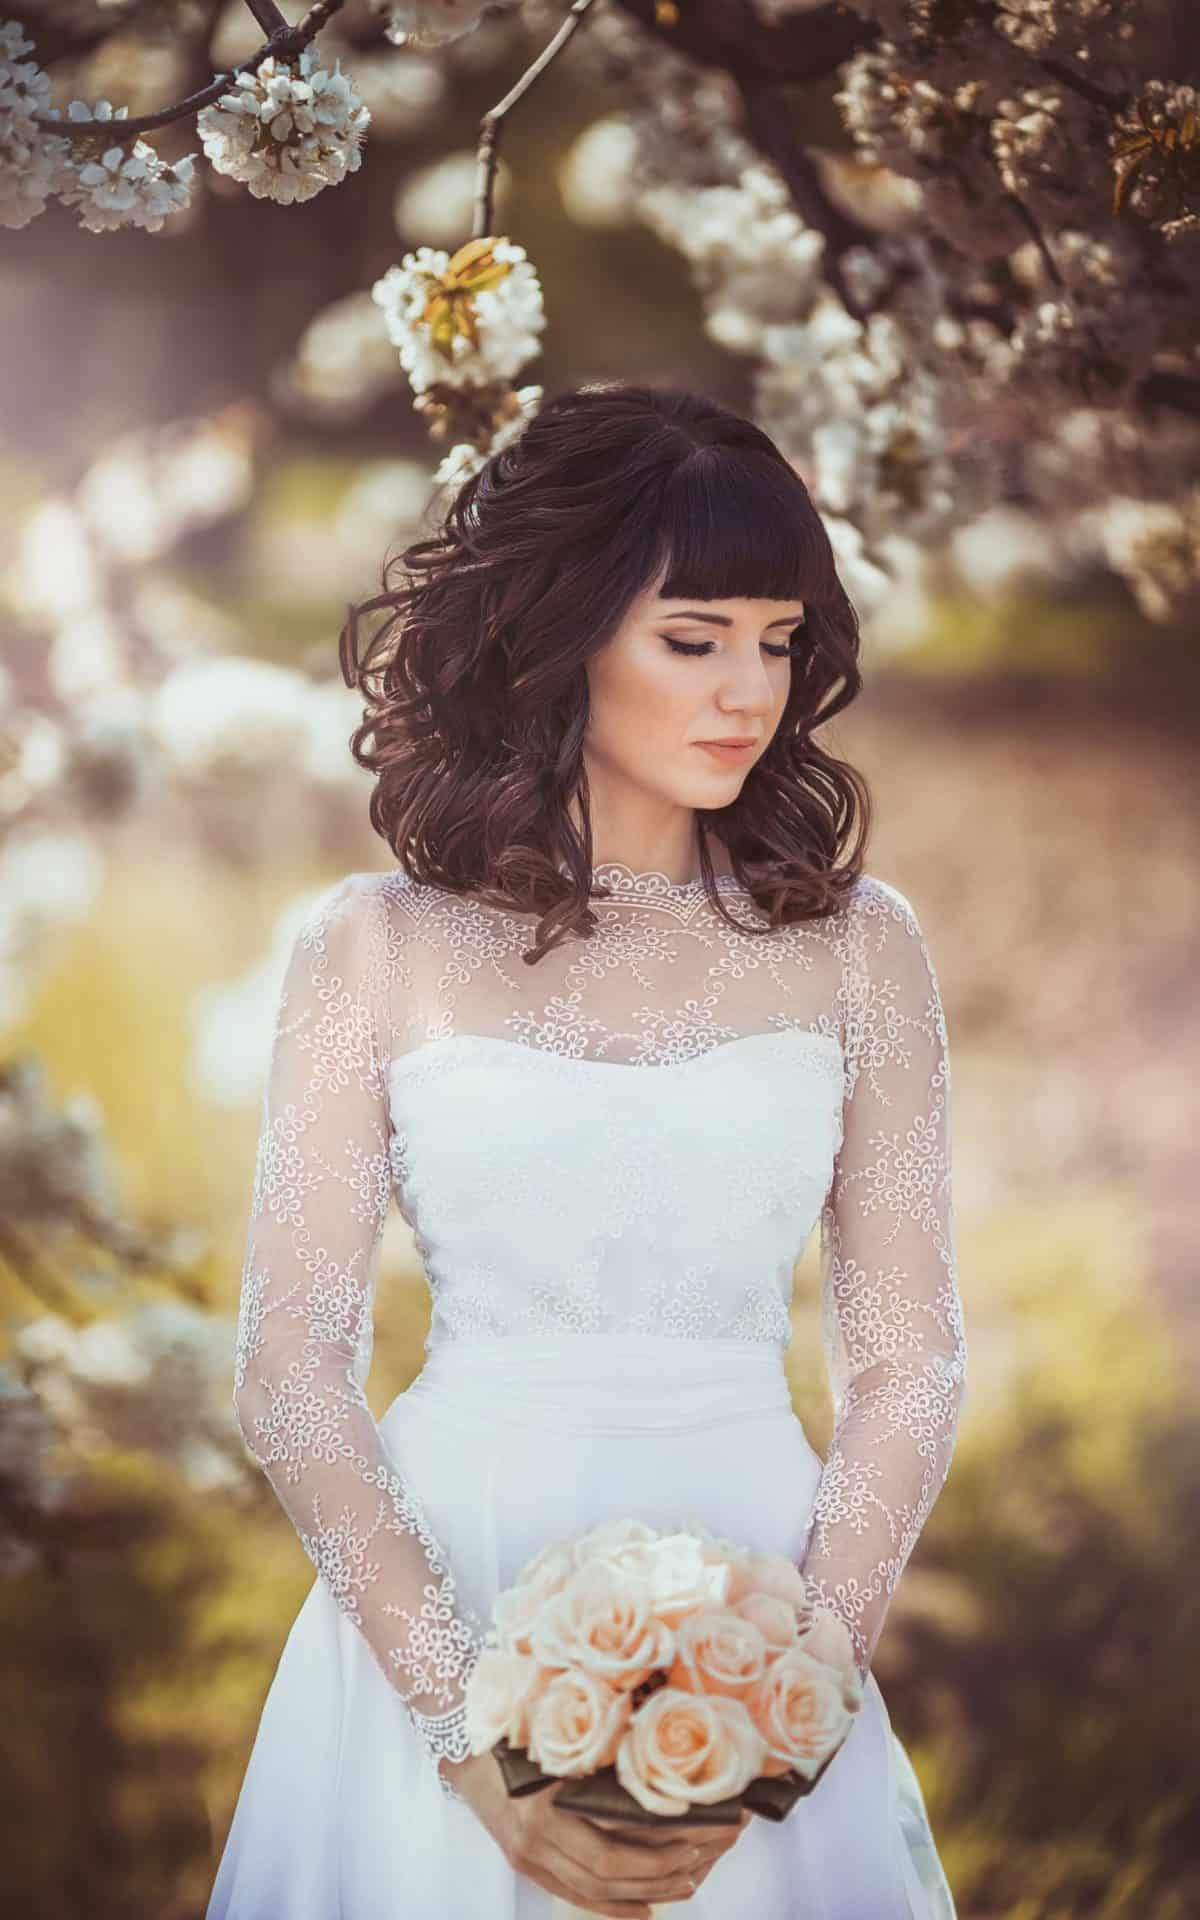 46504546 - beautiful bride with stylish make-up in white dress in spring garden